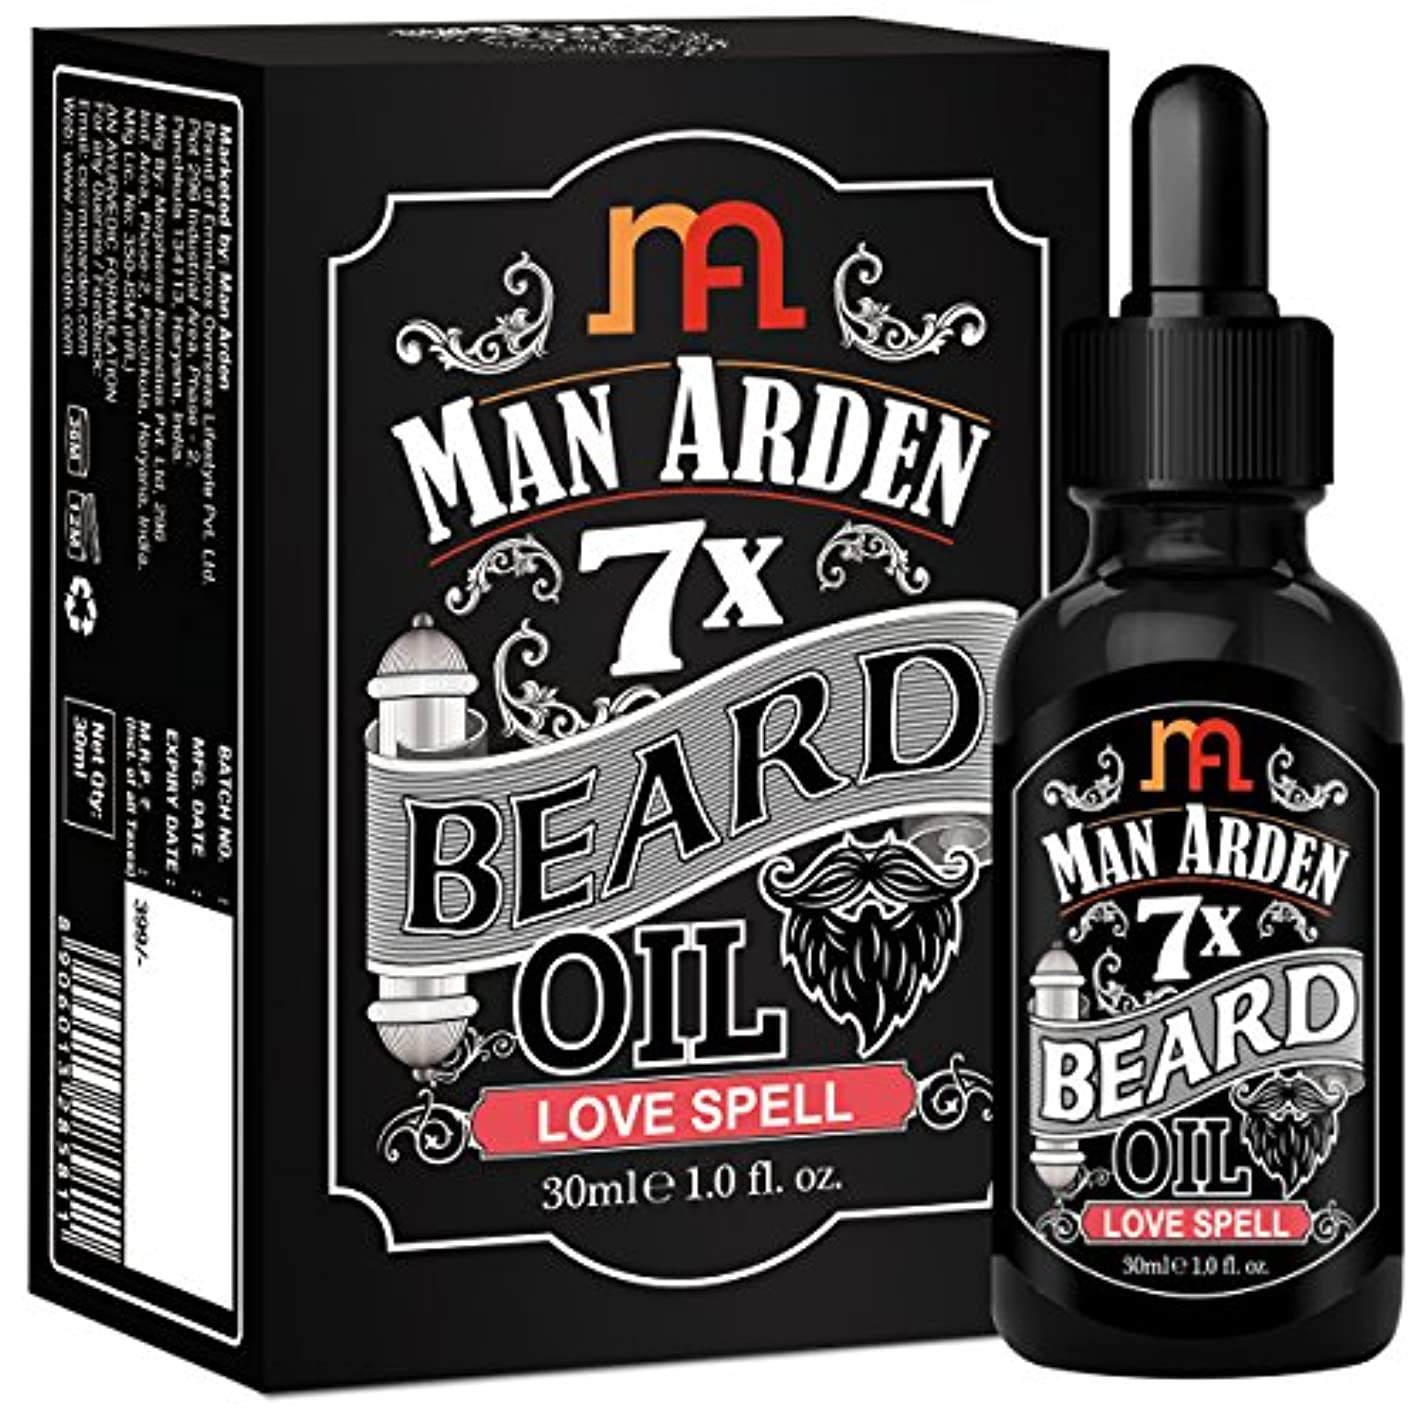 フォーム懸念追い払うMan Arden 7X Beard Oil 30ml (Love Spell) - 7 Premium Oils Blend For Beard Growth & Nourishment